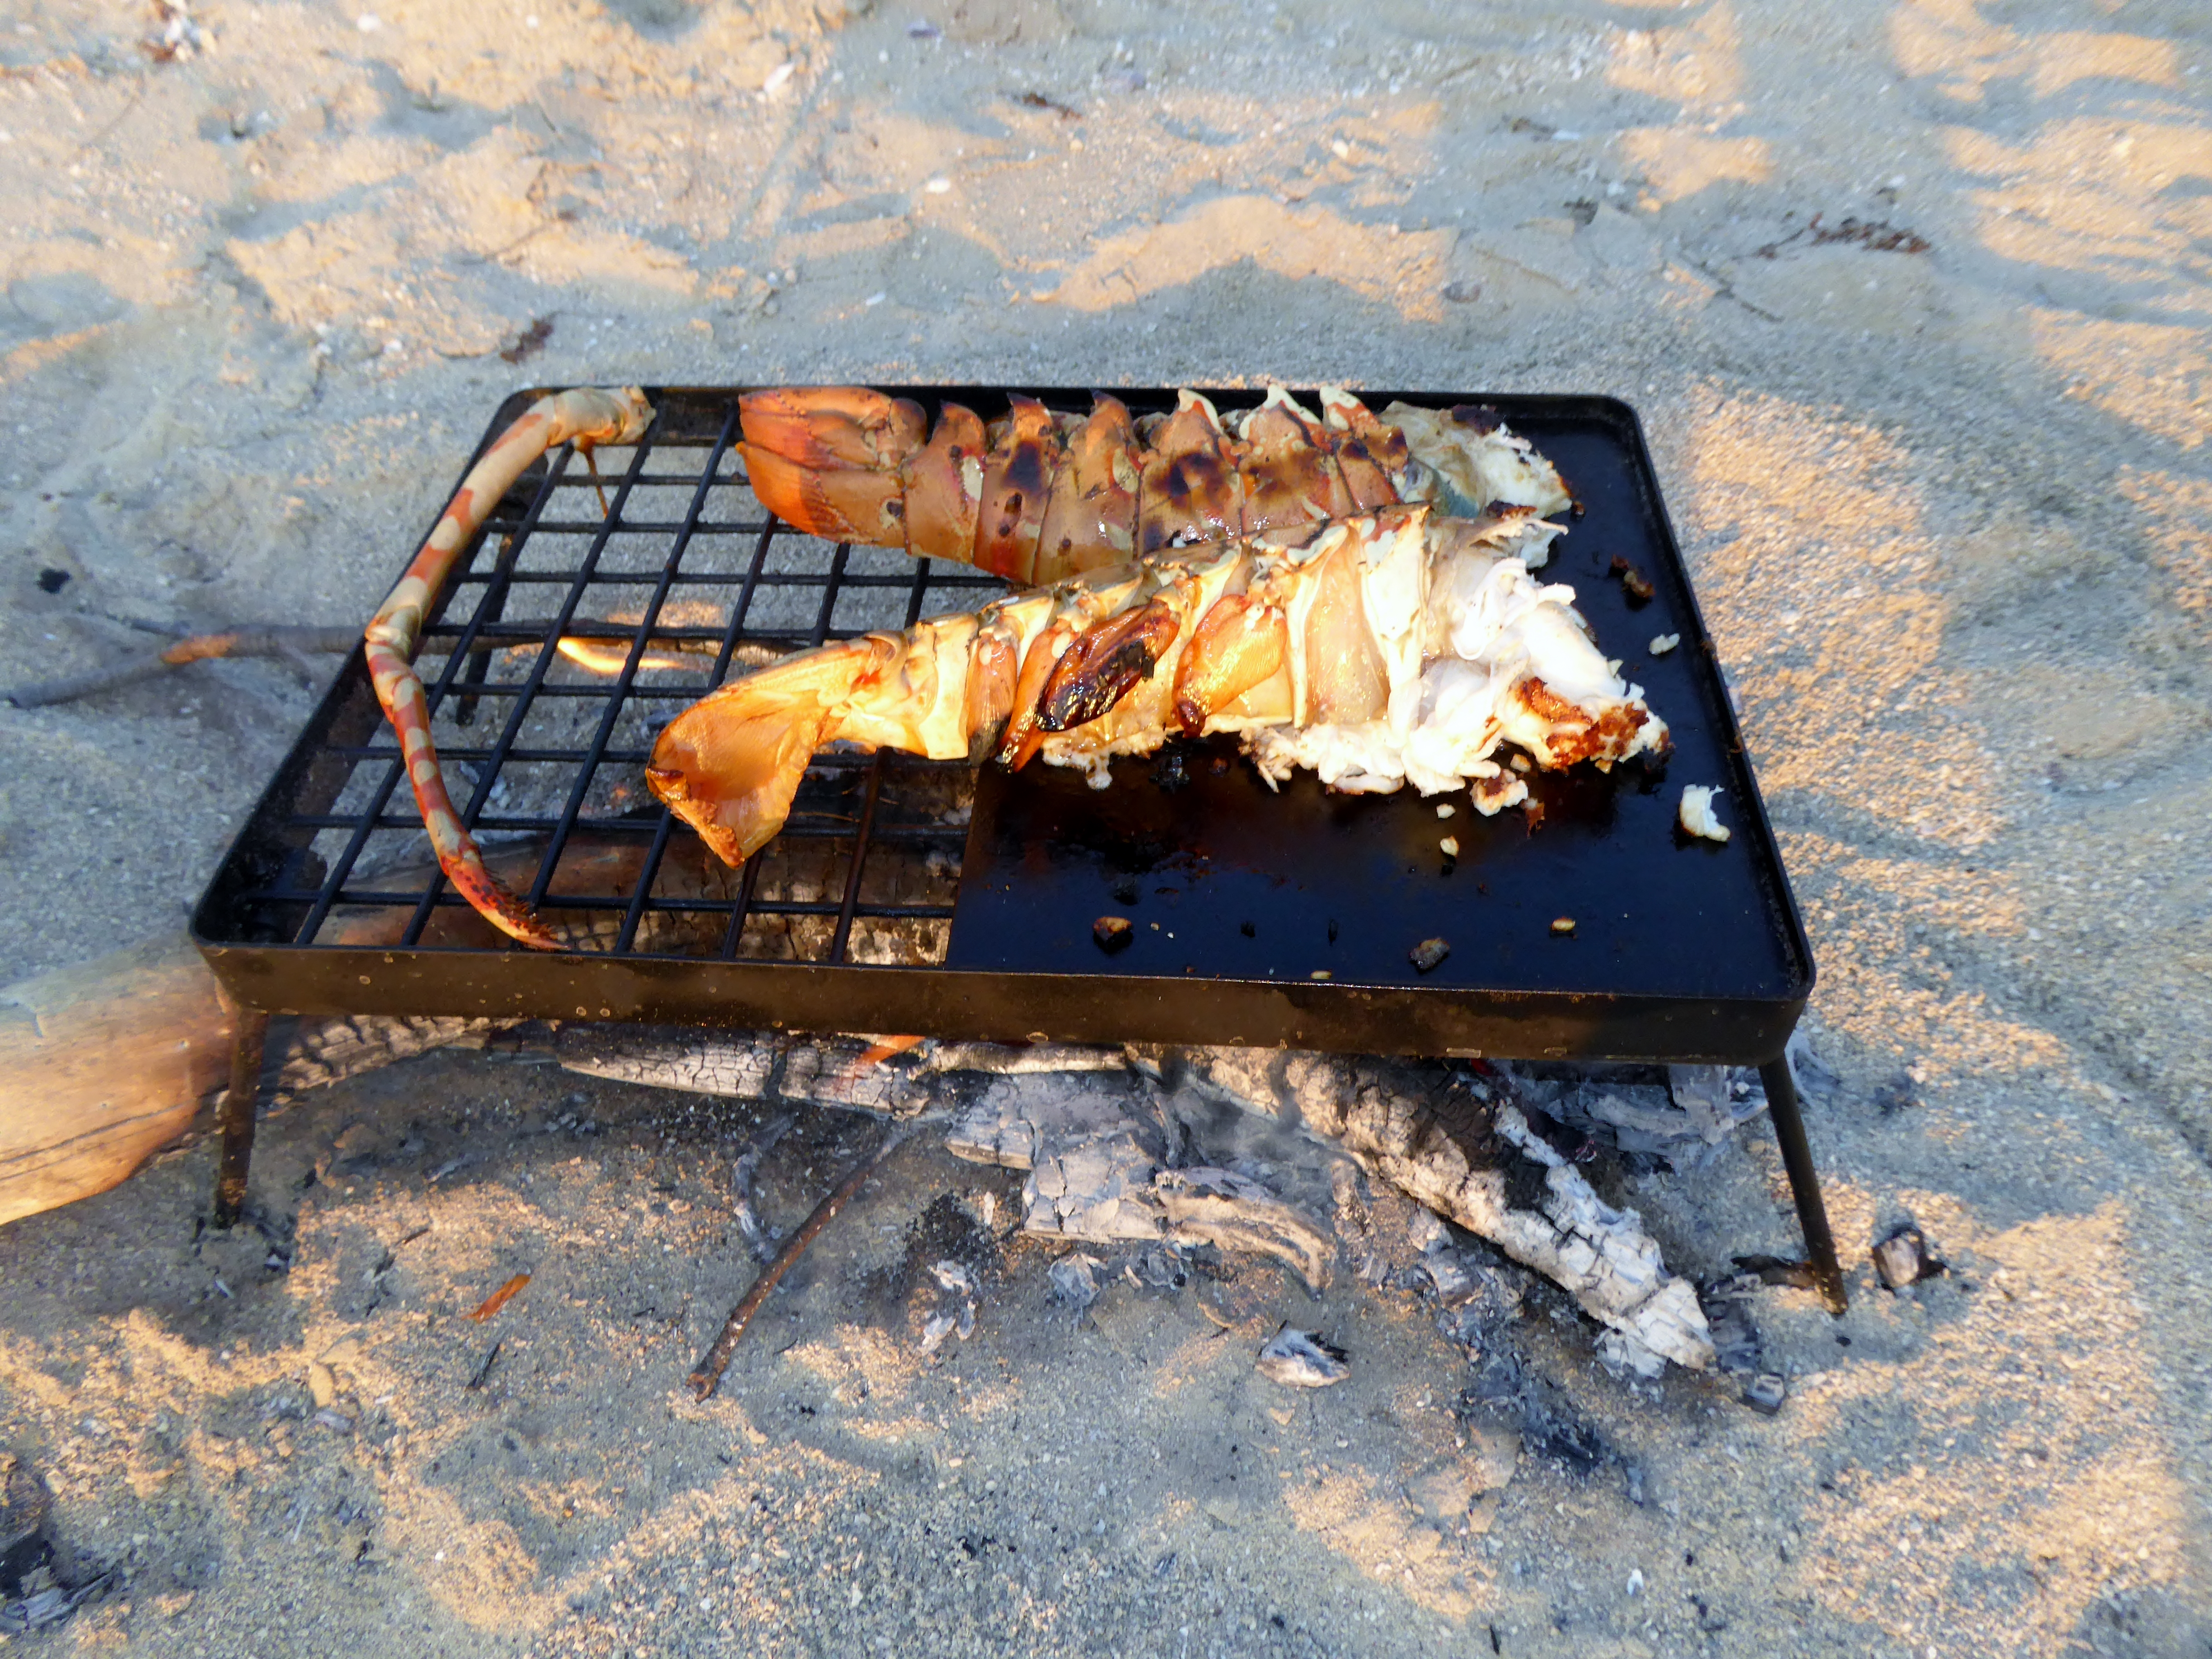 Char grill crayfish tails over a fire on the beach